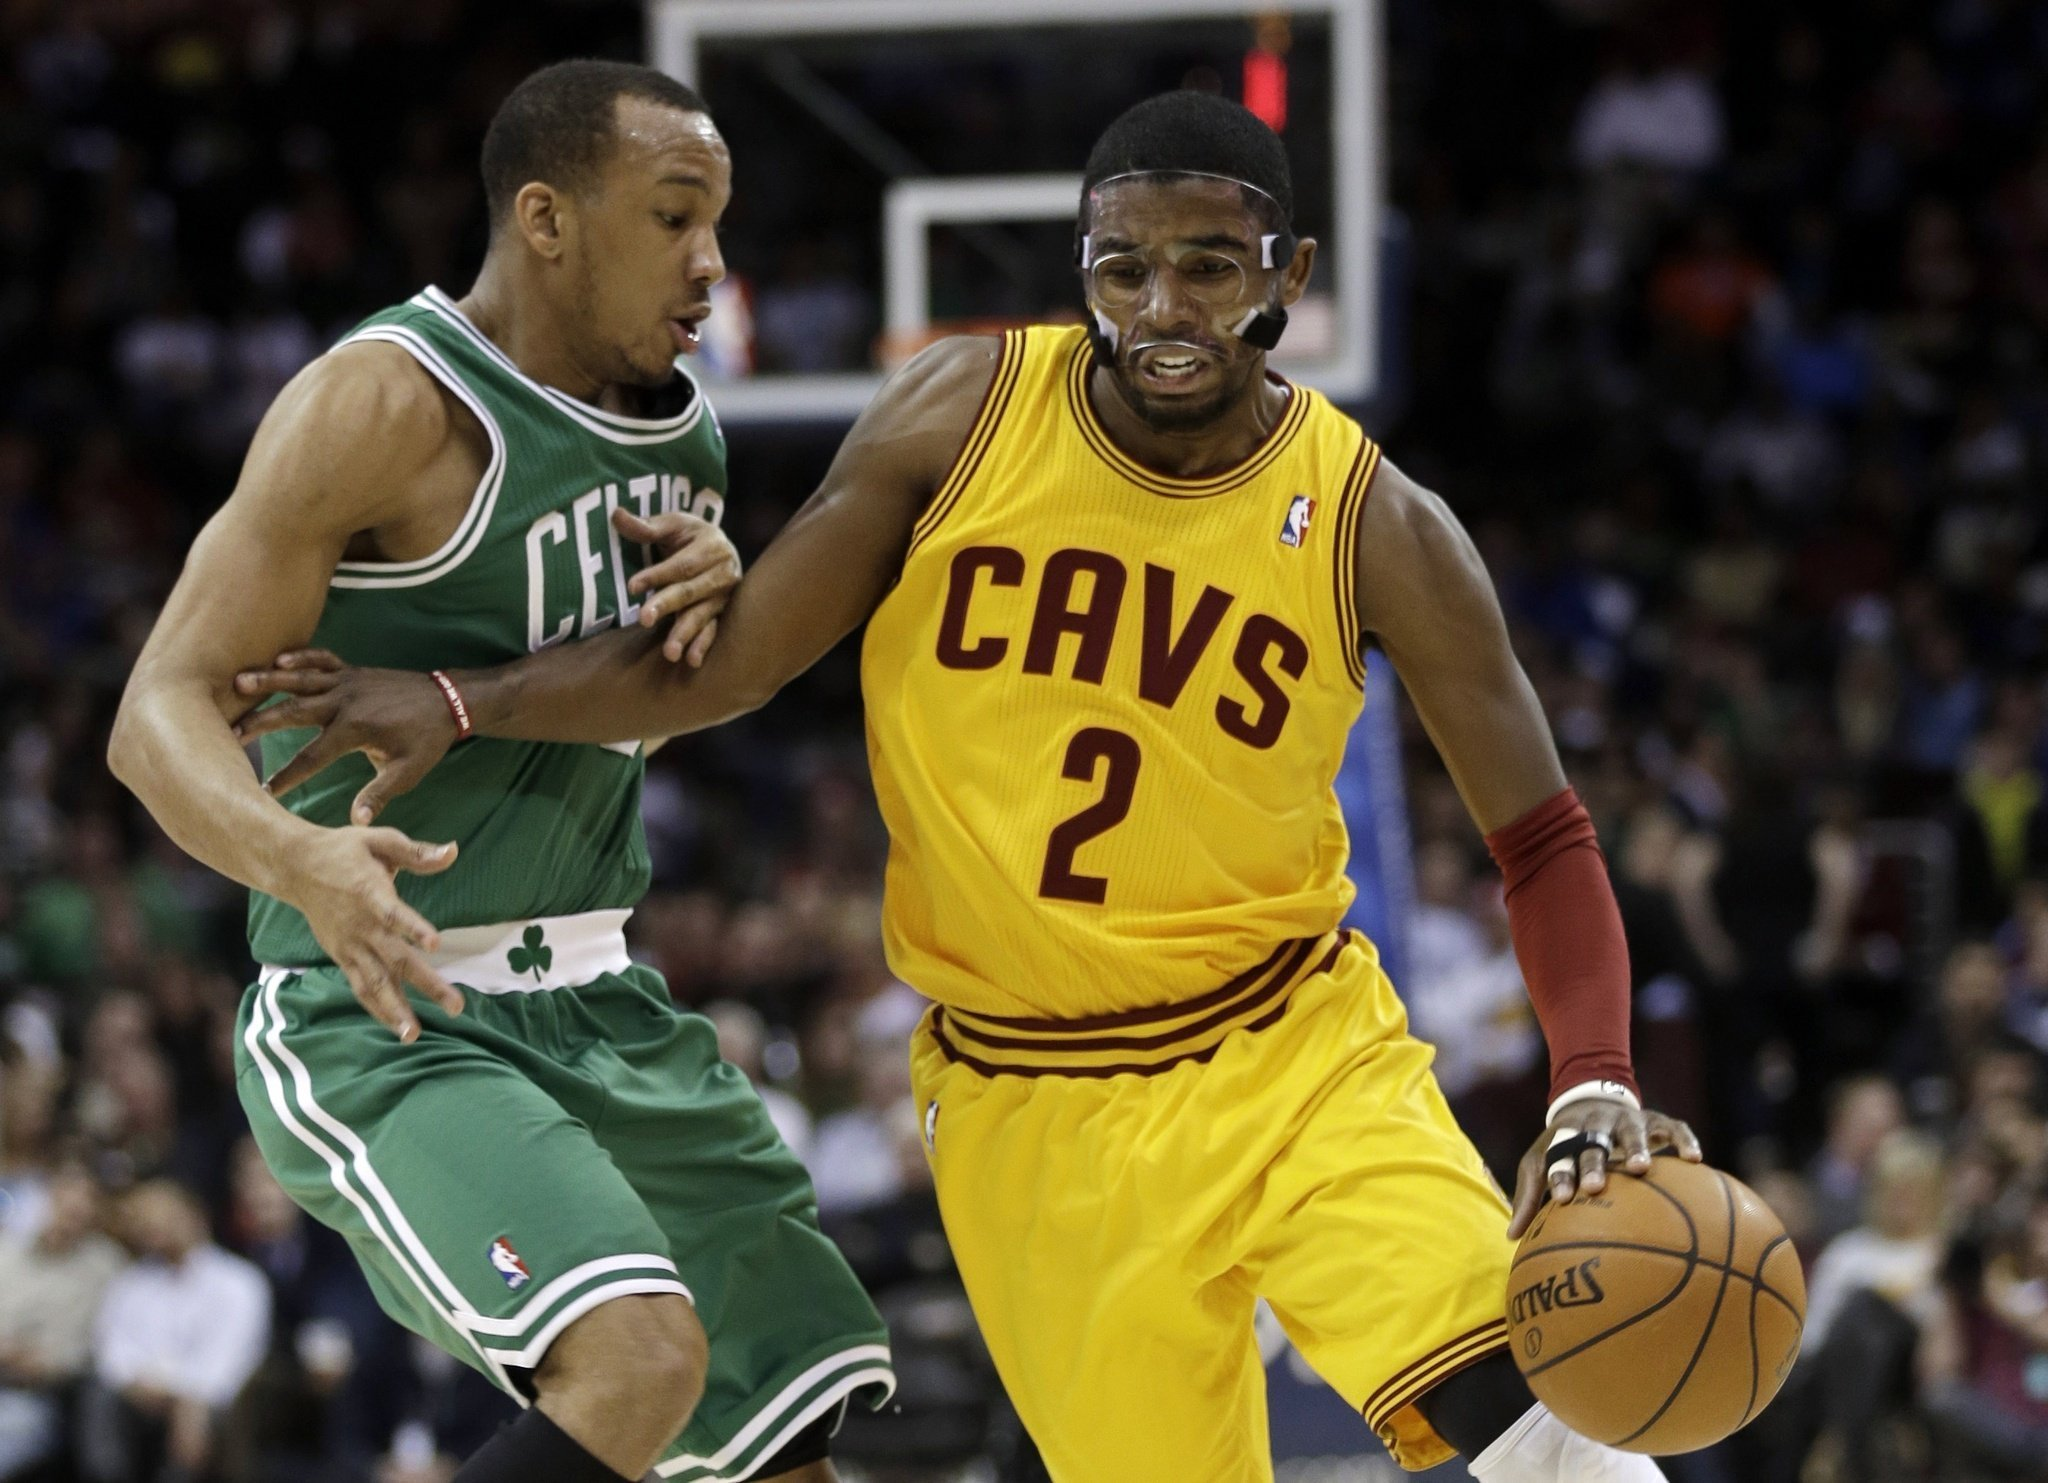 Kyrie Irving Crossover Kyrie irving segna 11 punti